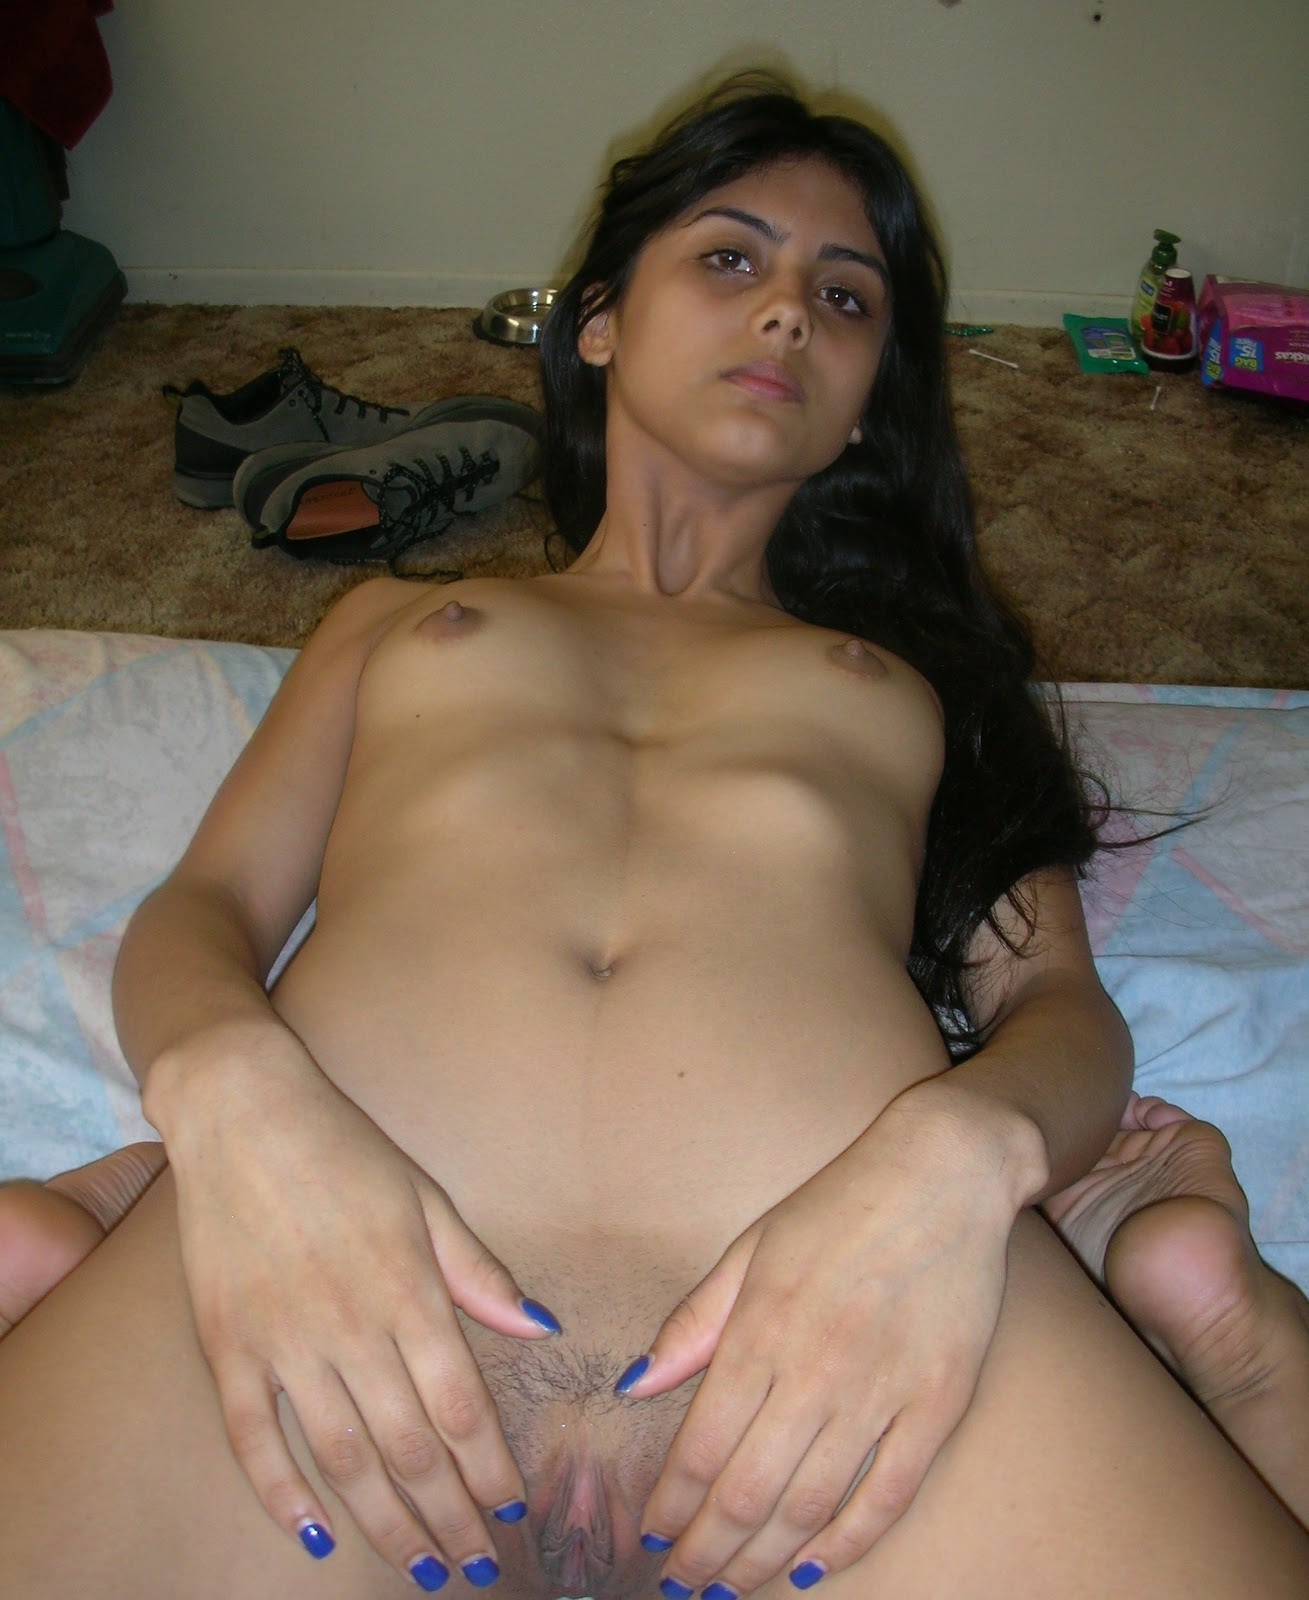 Teeny girls pussy pakistani — photo 10